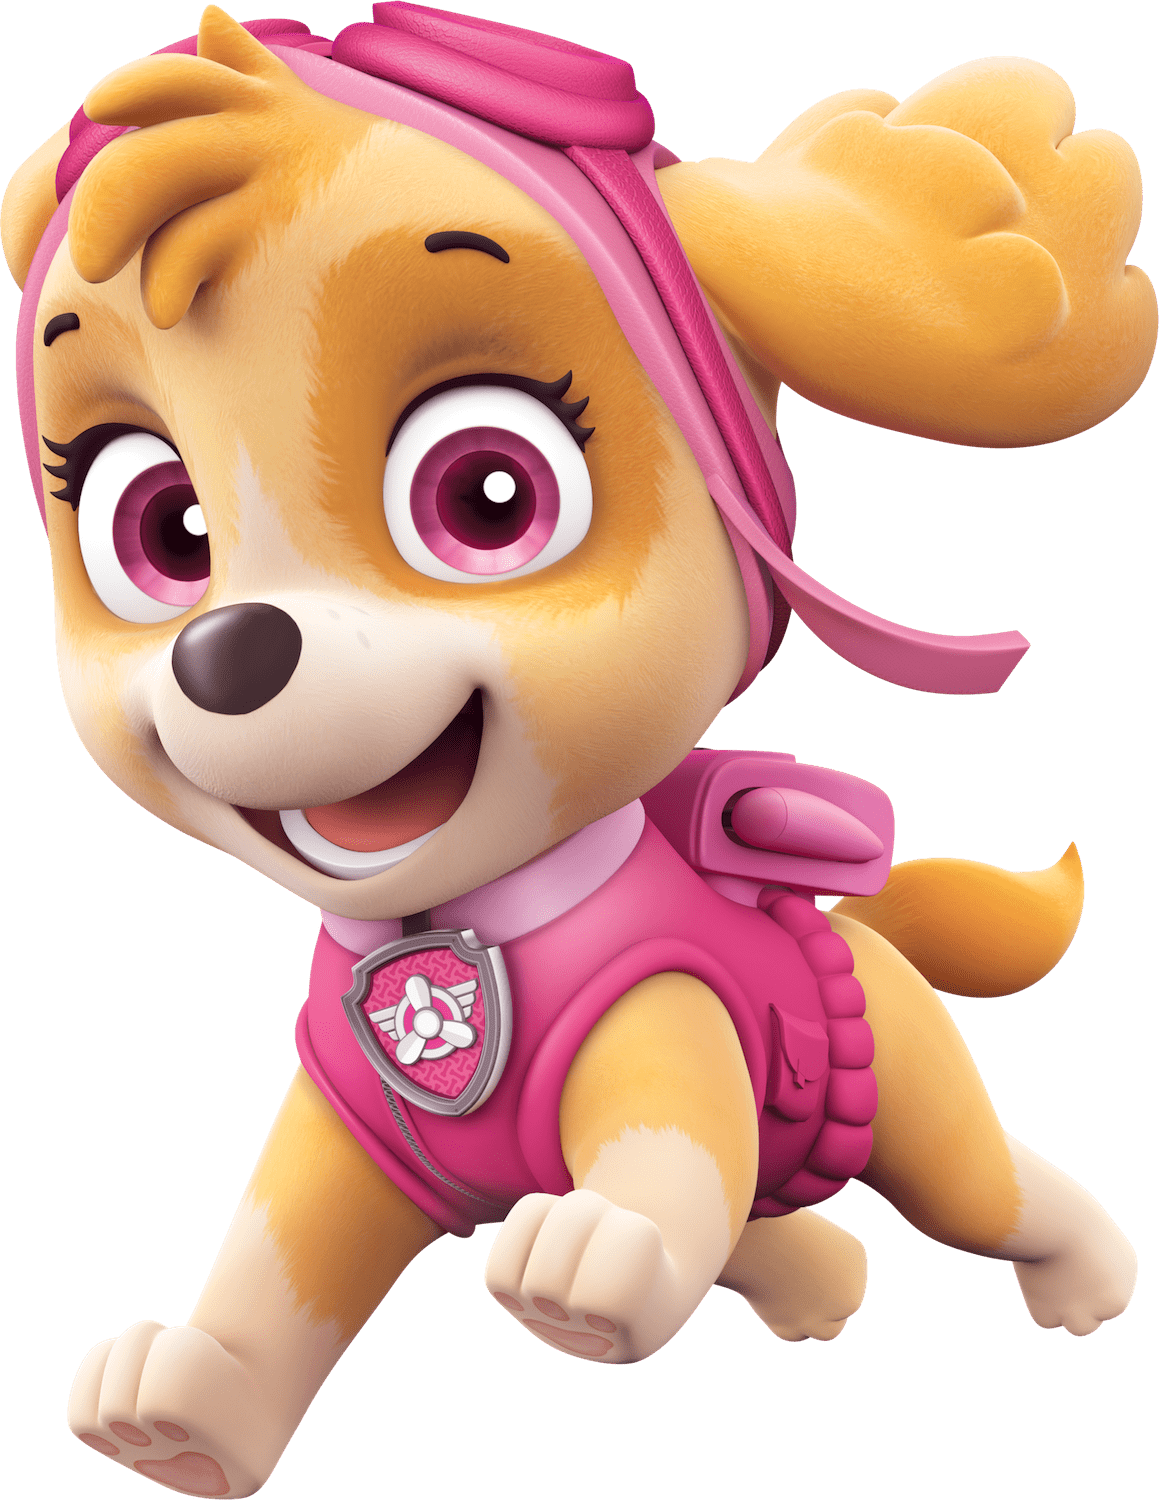 Happy Paw Patrol Photos 14105